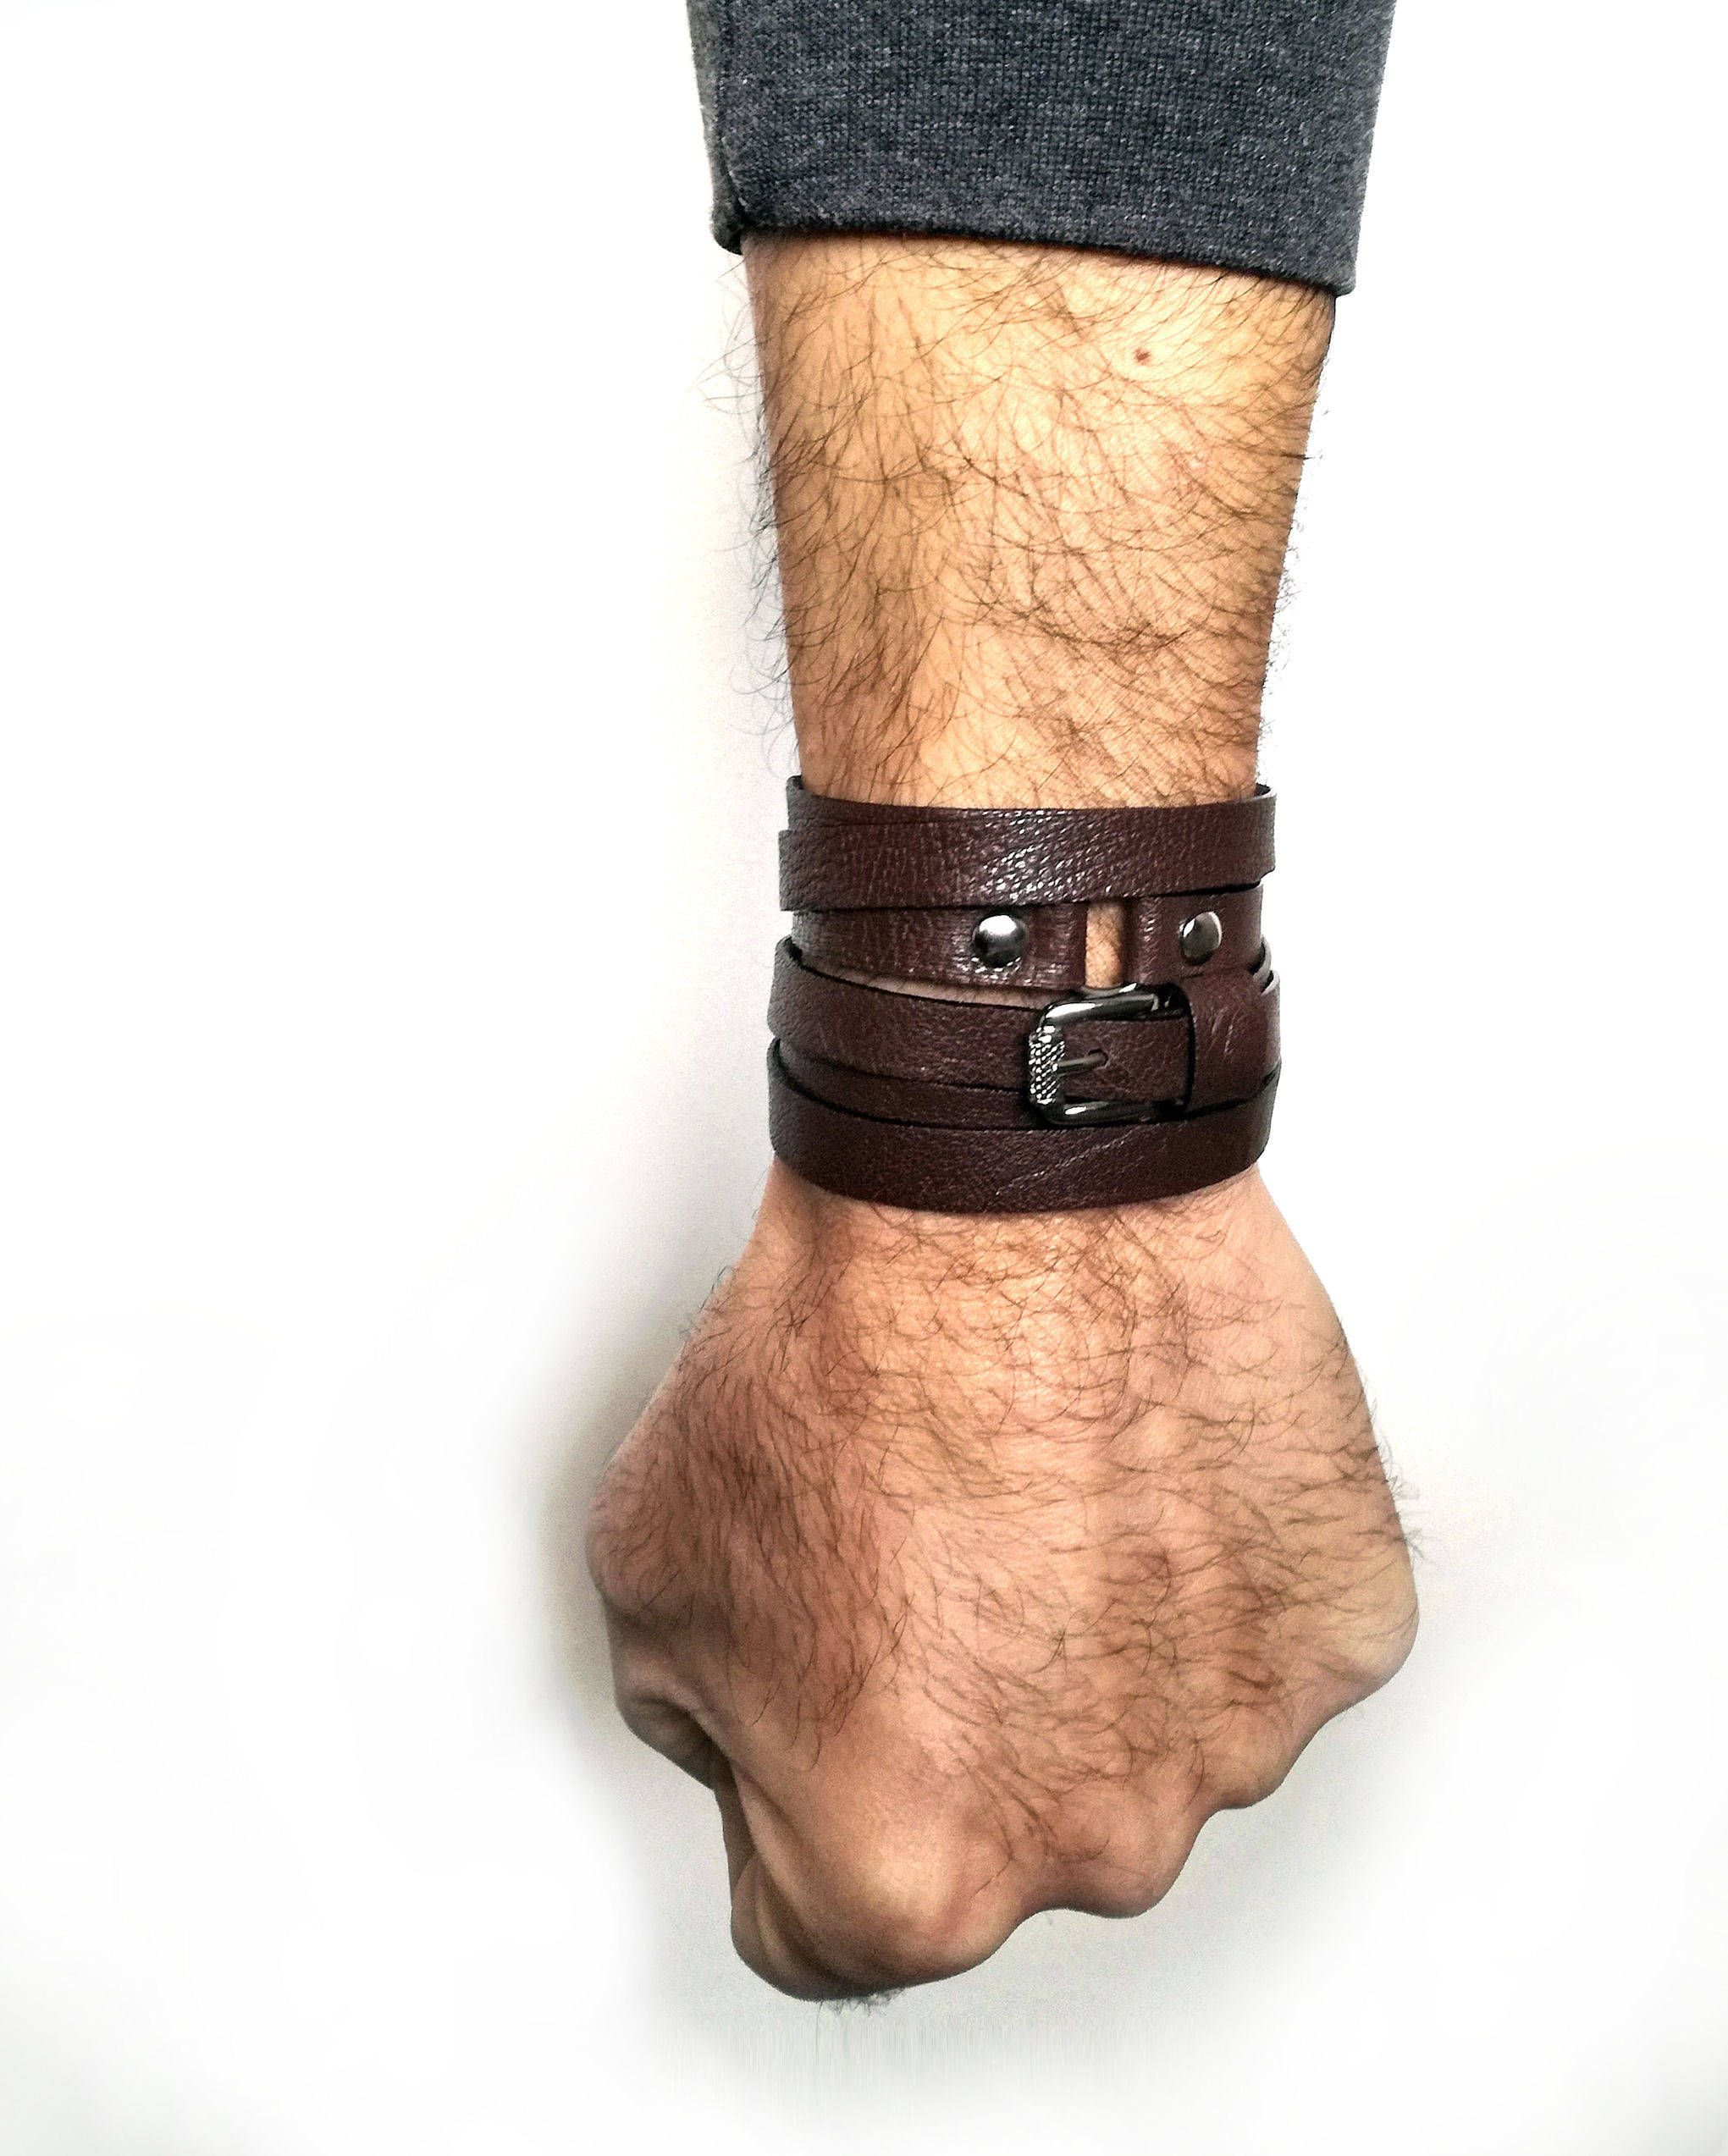 Mens wrapped leather bracelet, brown cuff, multi wrap leather cuff, gift for him, cuff with buckle mens leather cuff wrap bracelet